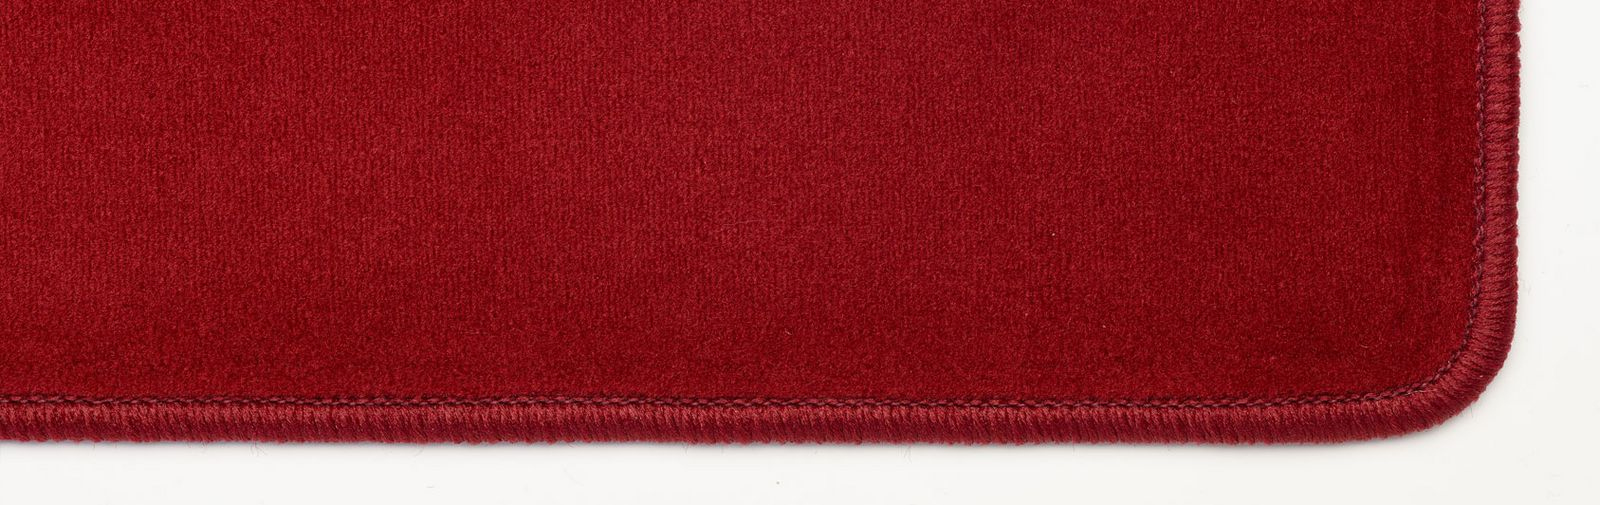 church carpet Capitol color code 12-010 color light red